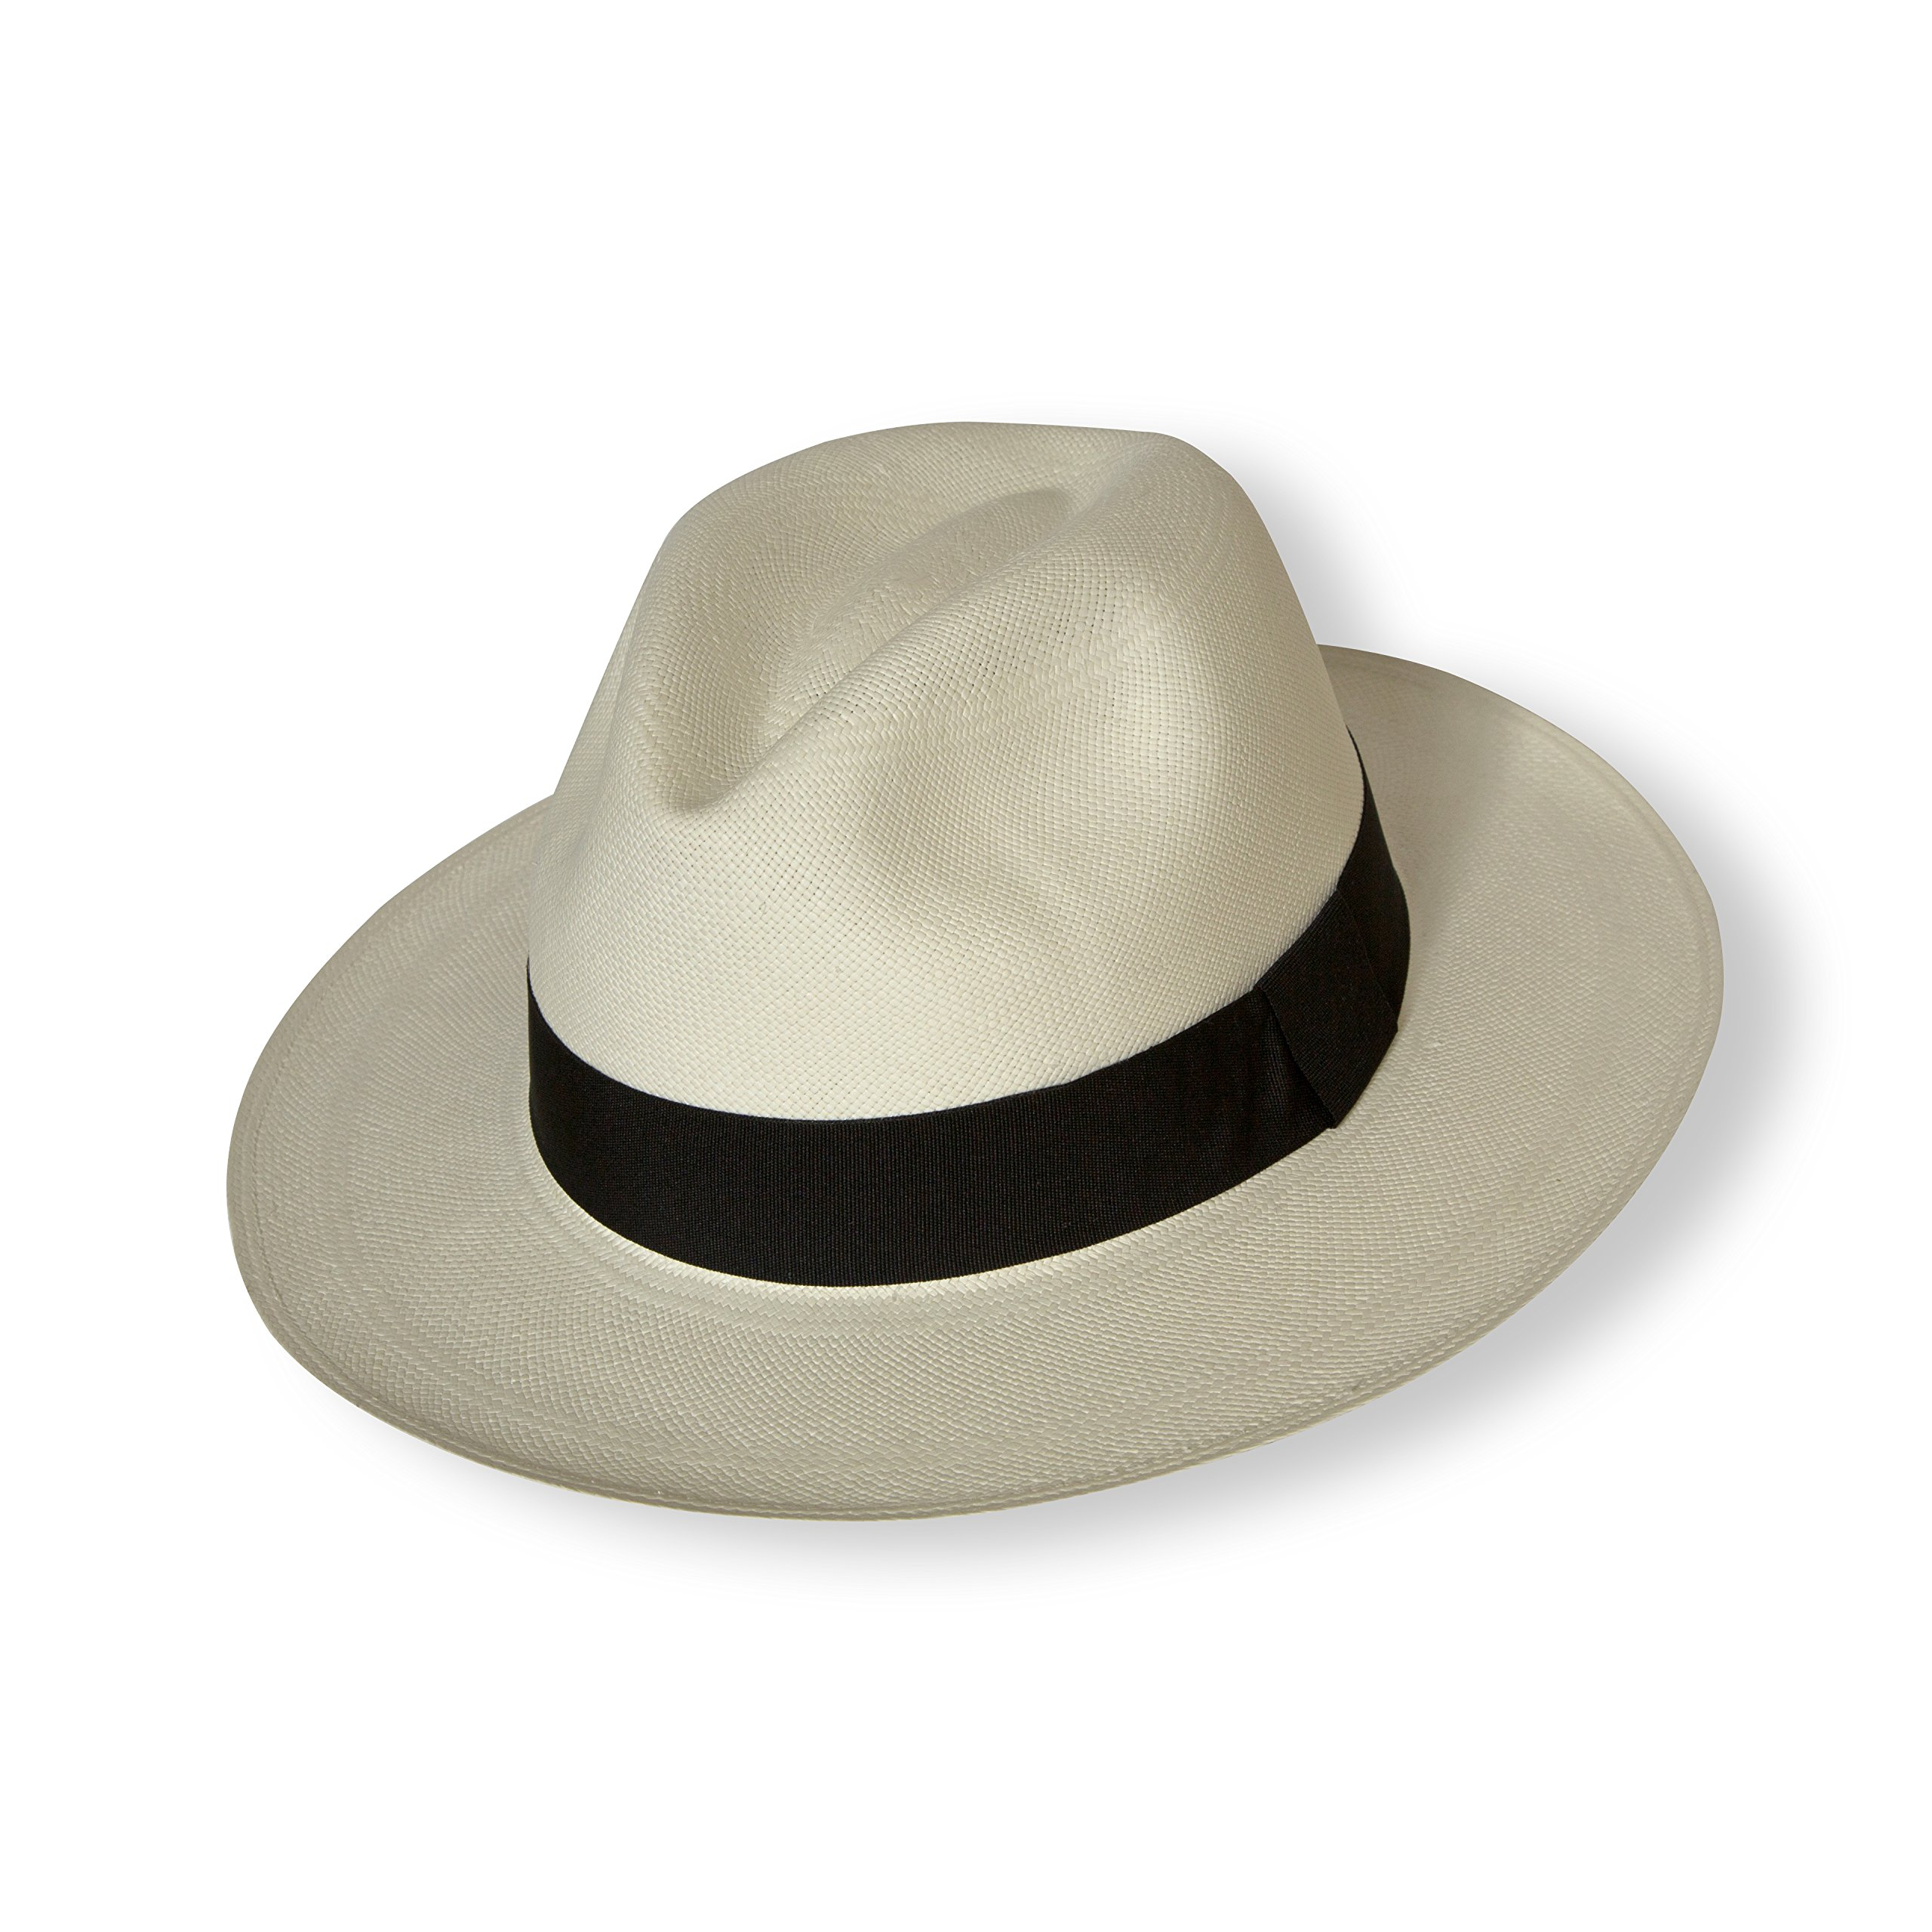 Borges & Scott Signature - Premium Fedora Panama Hat - Rollable for Travel - Natural Straw with Brown Band - 58cm